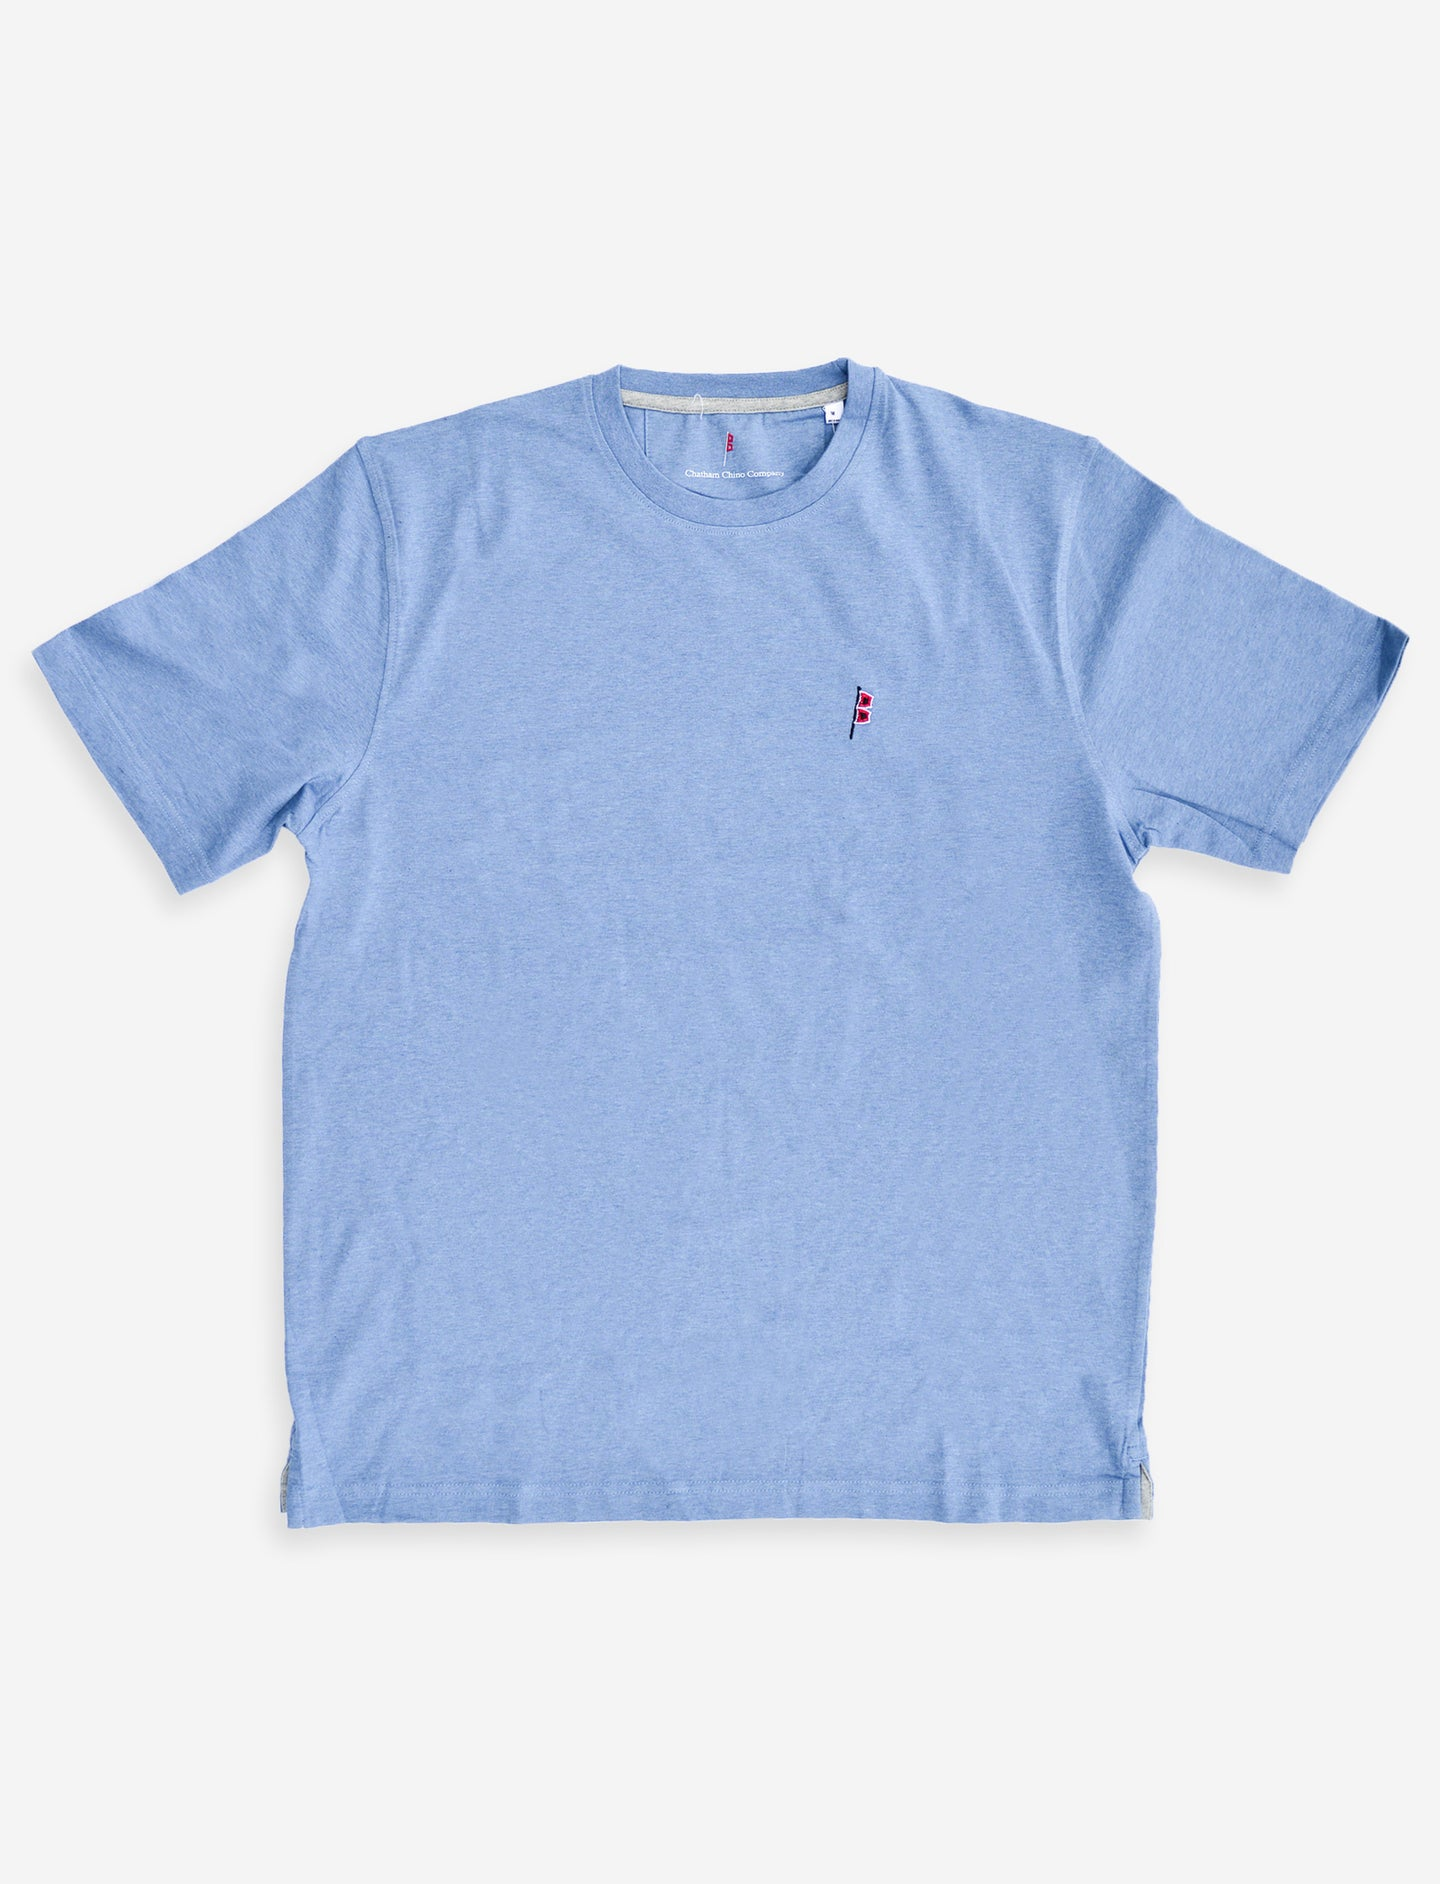 Hurricane Tee: Blue